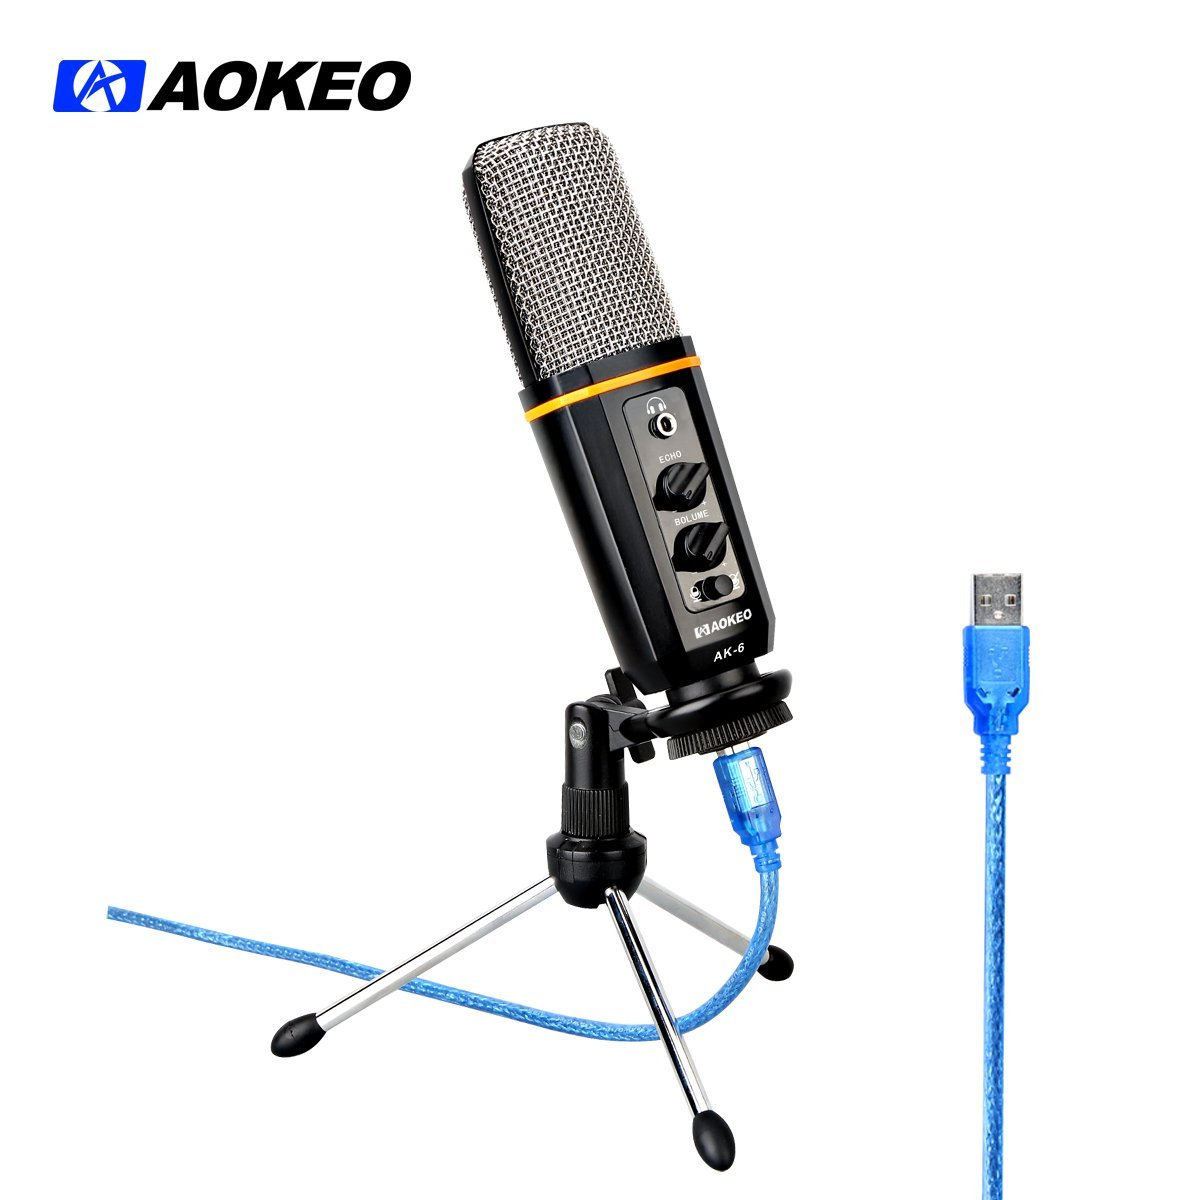 Aokeo AK-6 Desktop USB Condenser Microphone, Stereoscopic Podcast Broadcasting Mic with... by aokeo